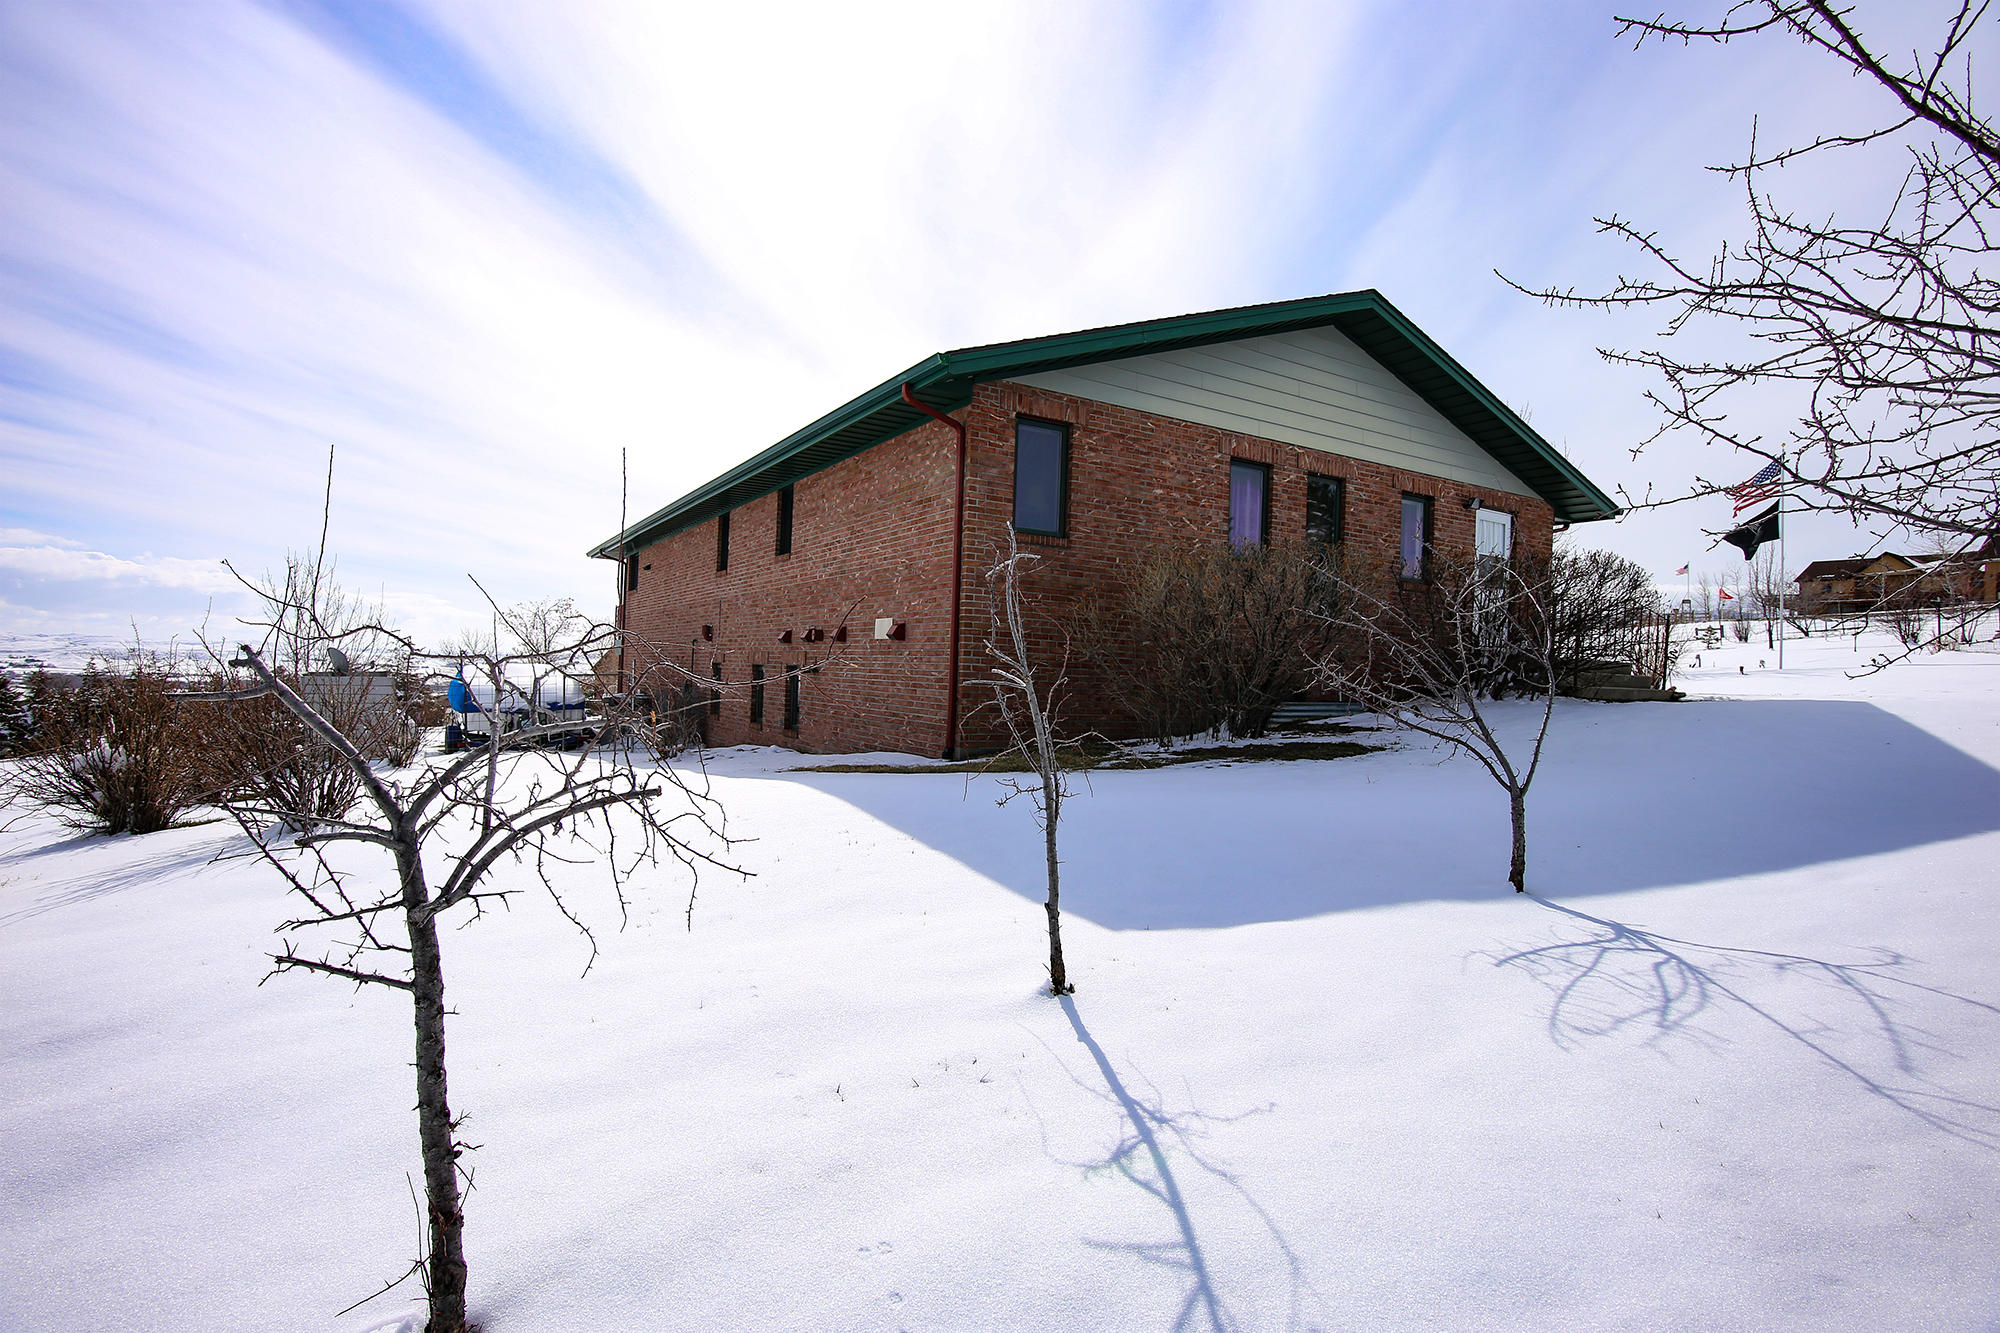 35 Cato Drive, Sheridan, Wyoming 82801, 4 Bedrooms Bedrooms, ,3 BathroomsBathrooms,Ranch,For Sale,Cato,19-335